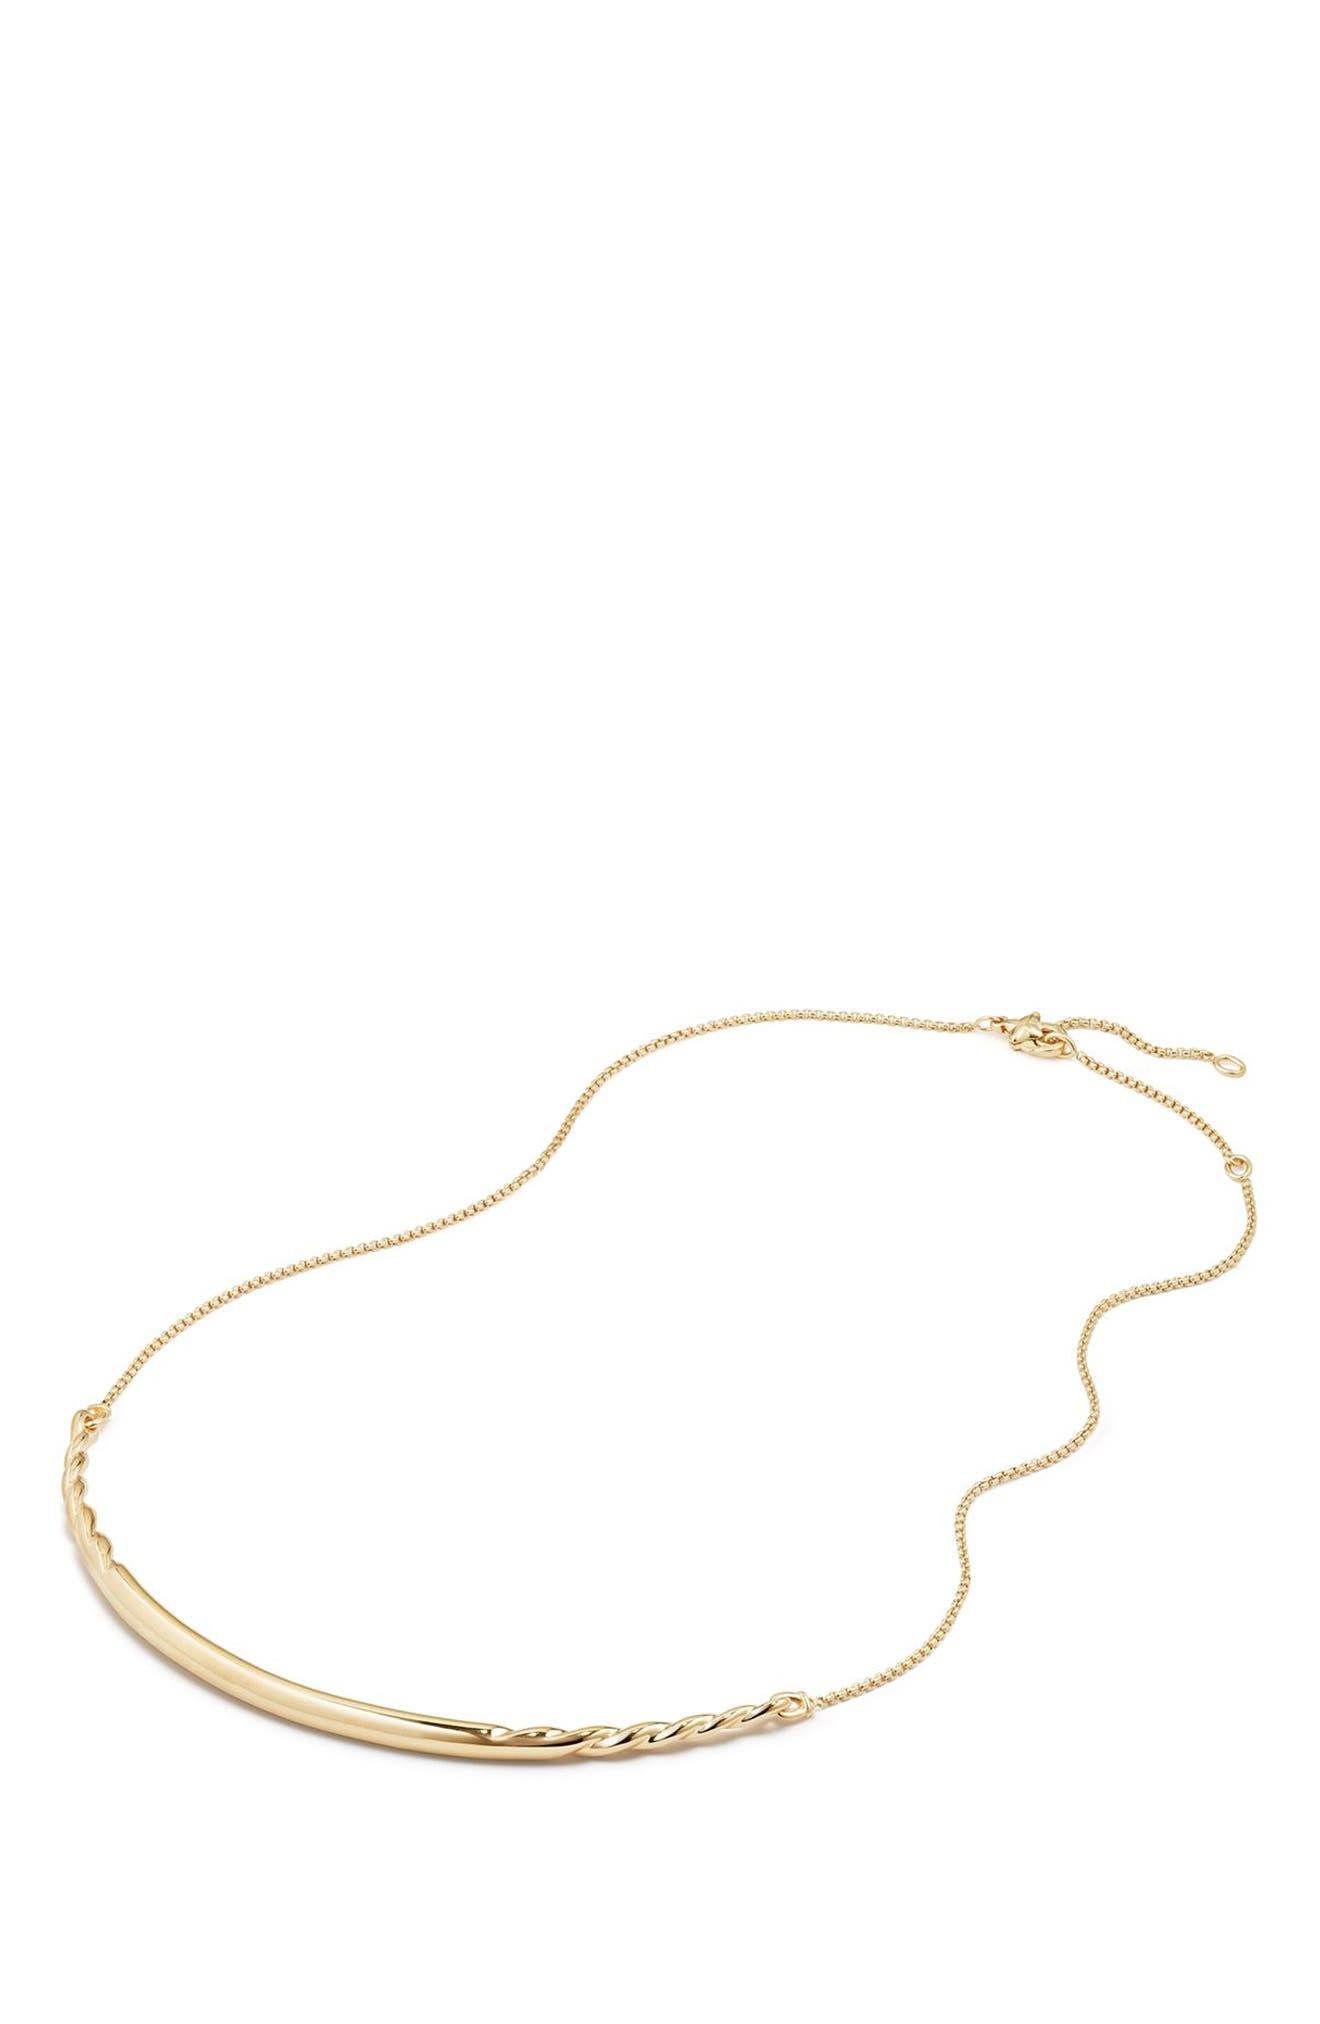 Pure Form Collar Necklace in 18K Gold,                             Alternate thumbnail 2, color,                             YELLOW GOLD